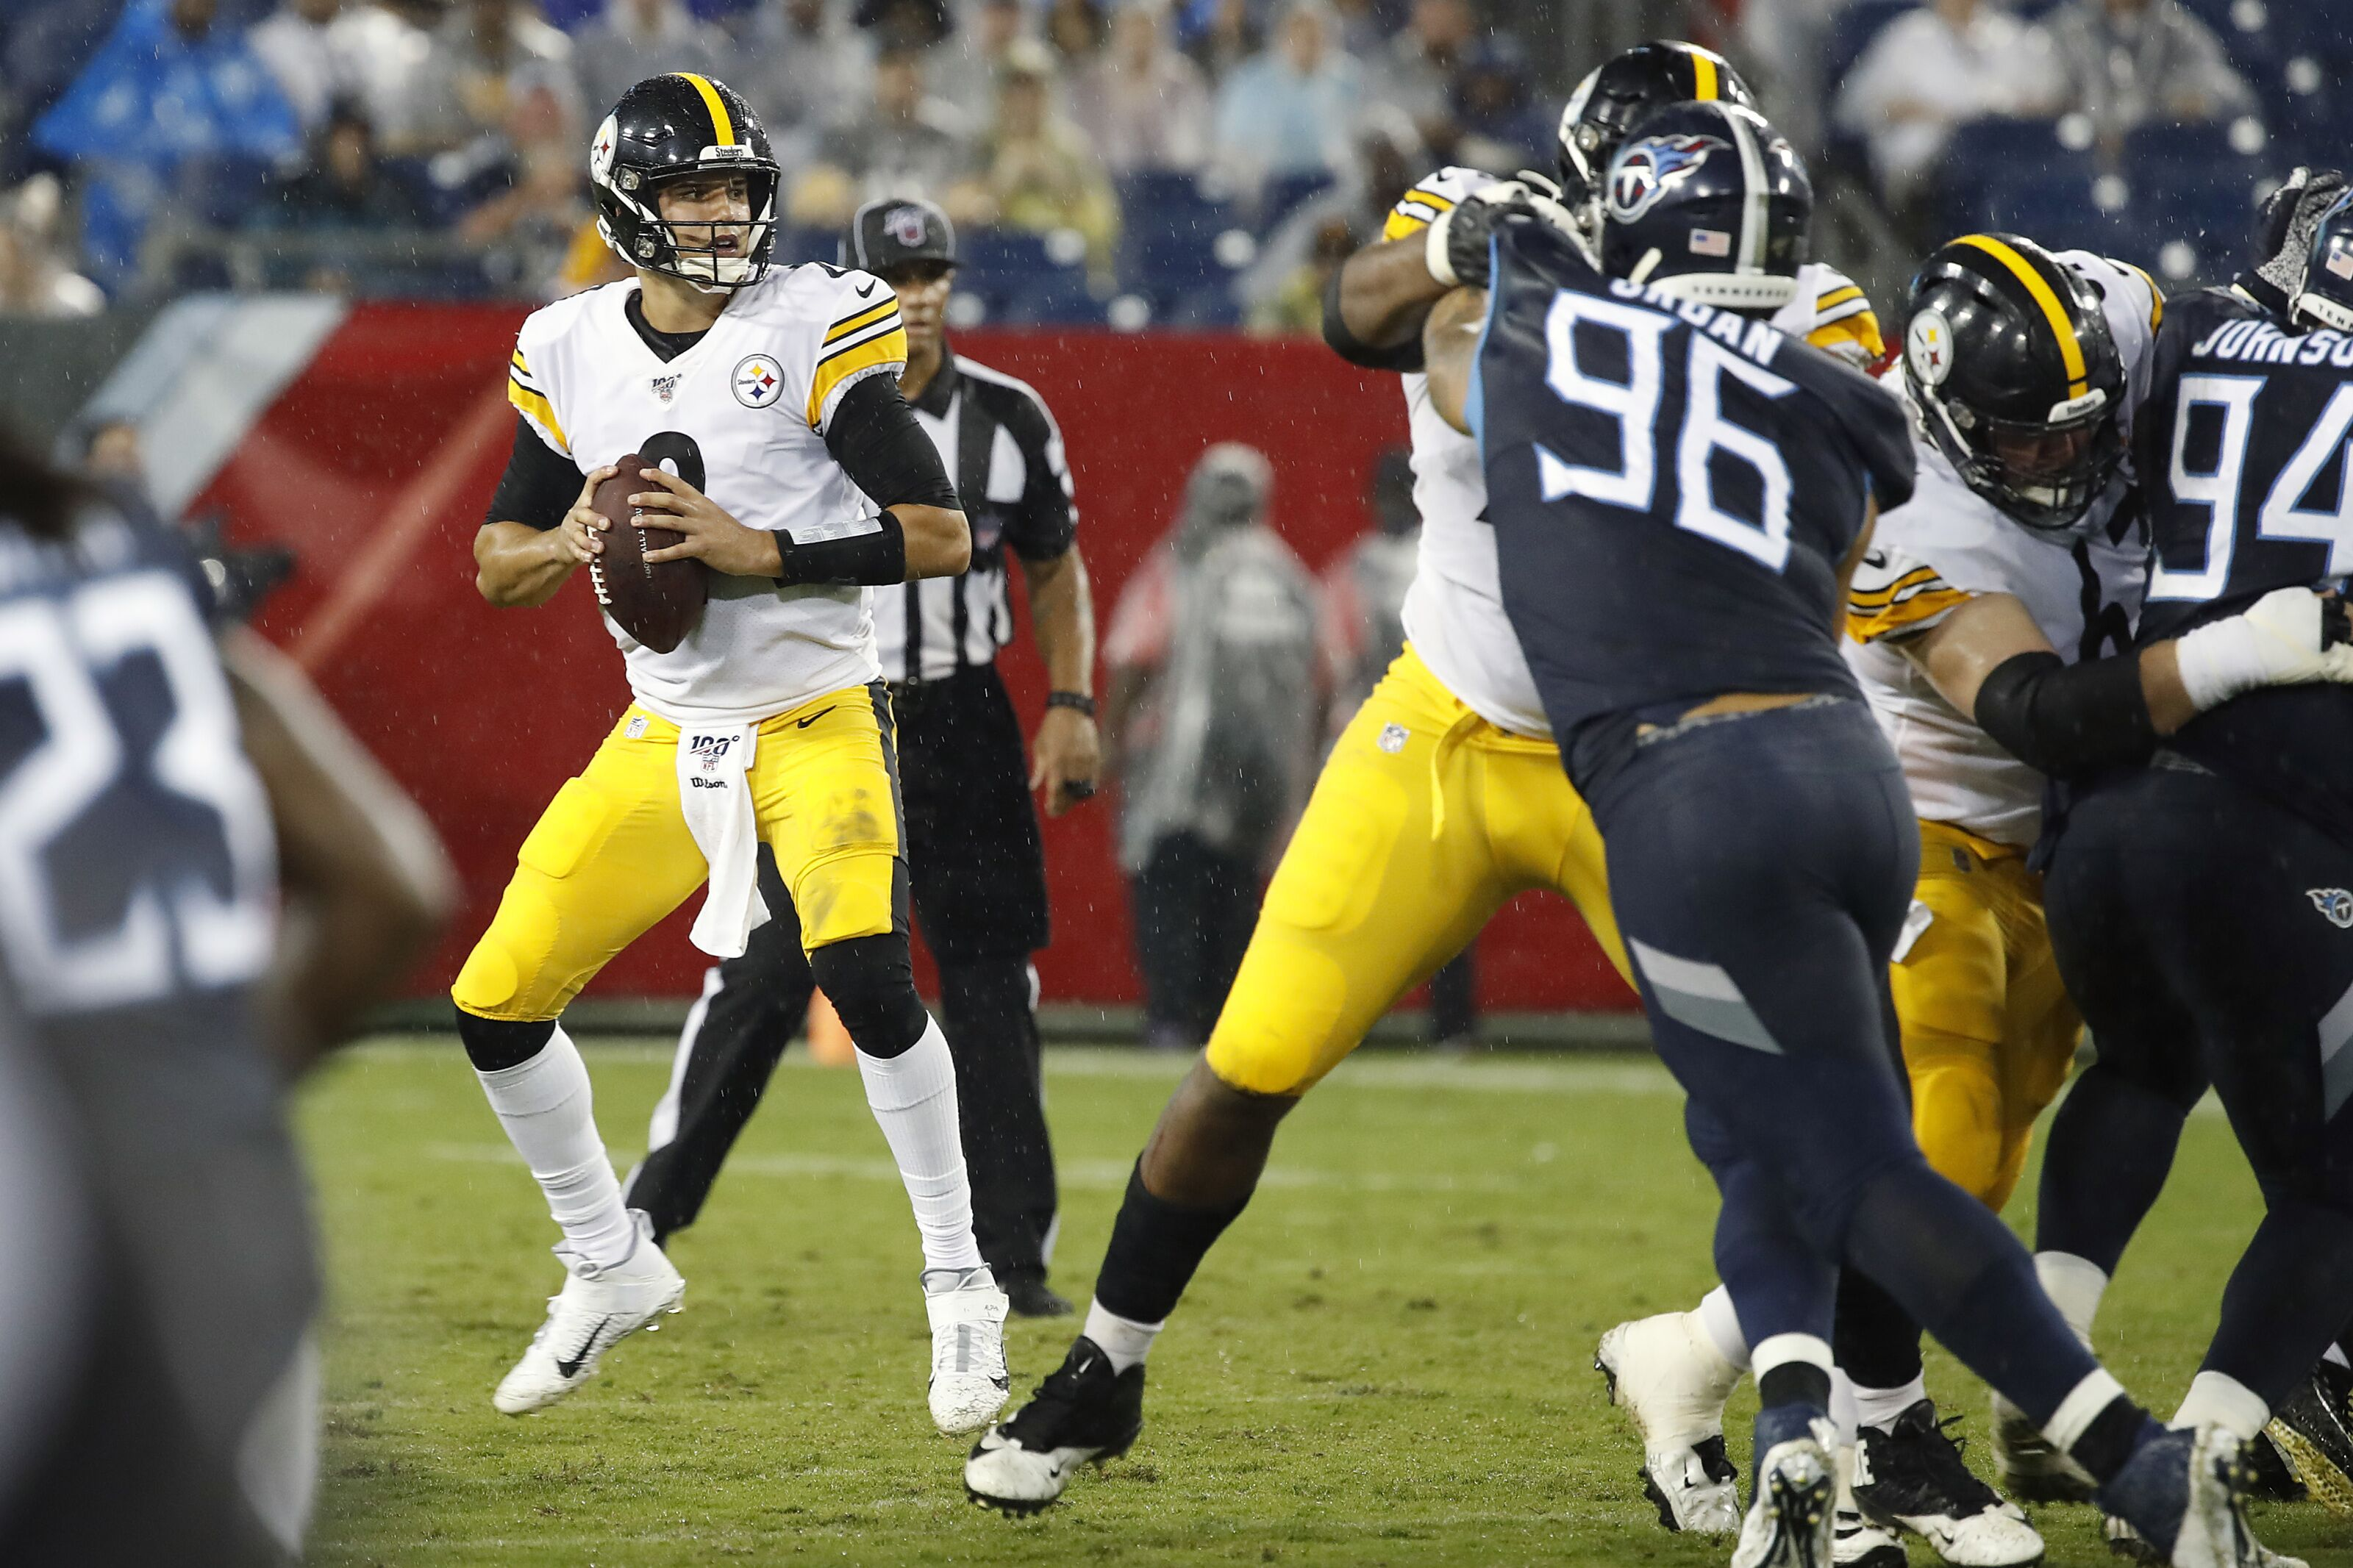 Steelers stock rising/falling after dress rehearsal win vs Titans